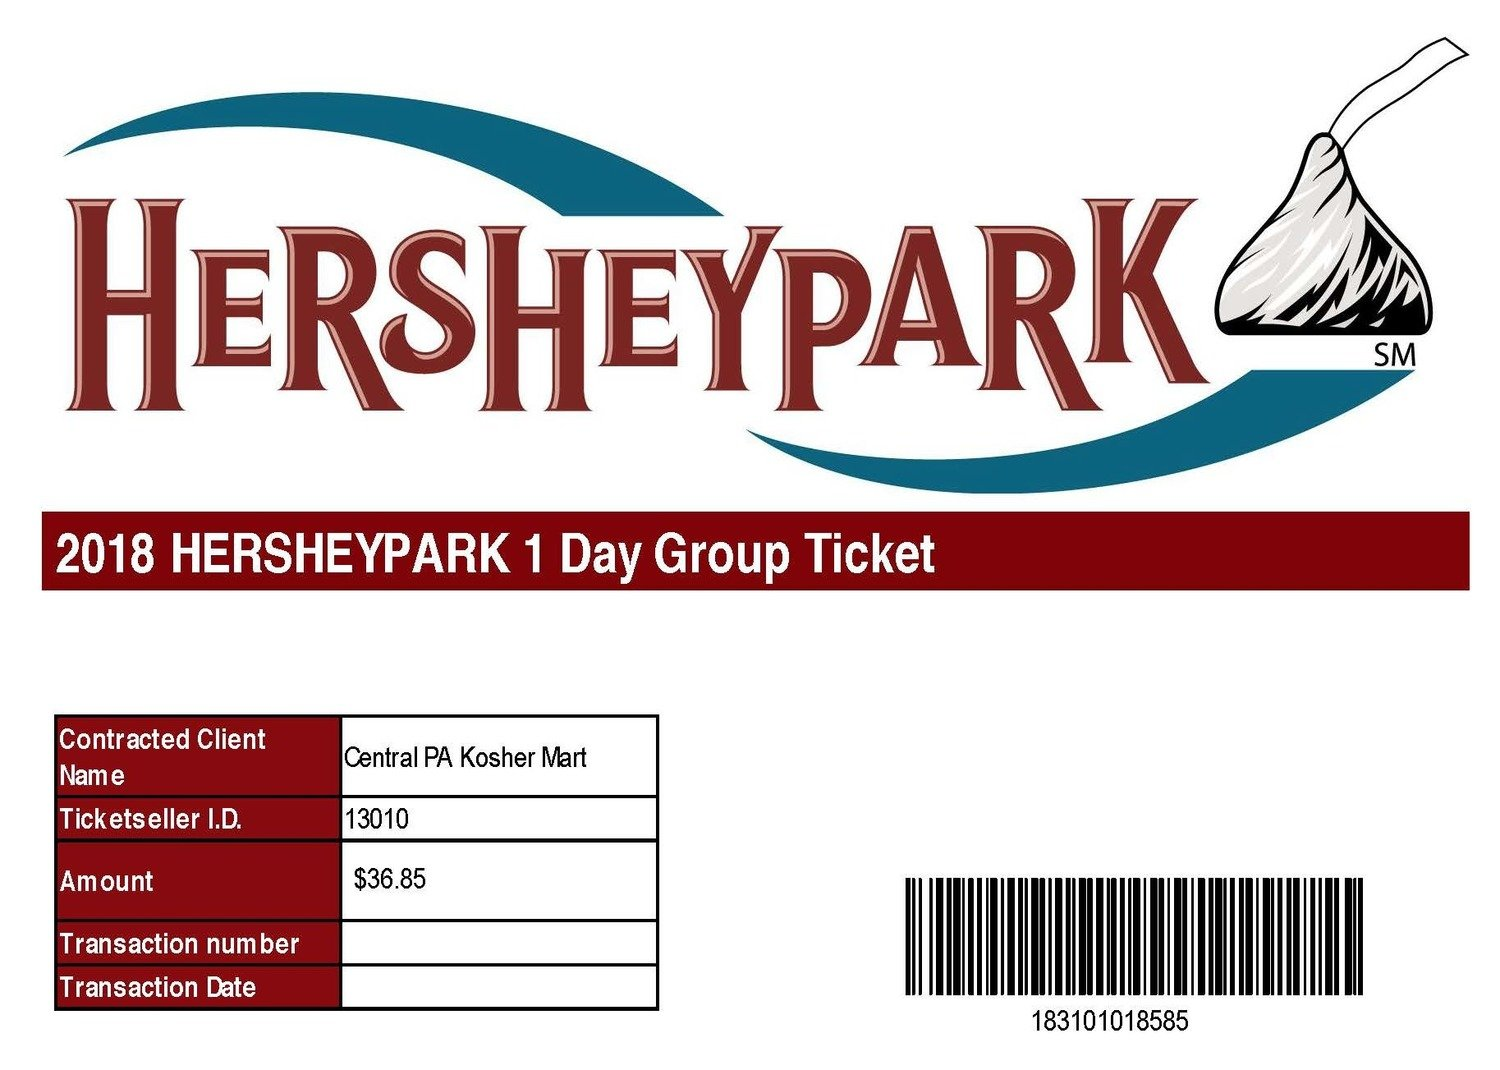 Group Ticket- Purchase Deadline May 31st.